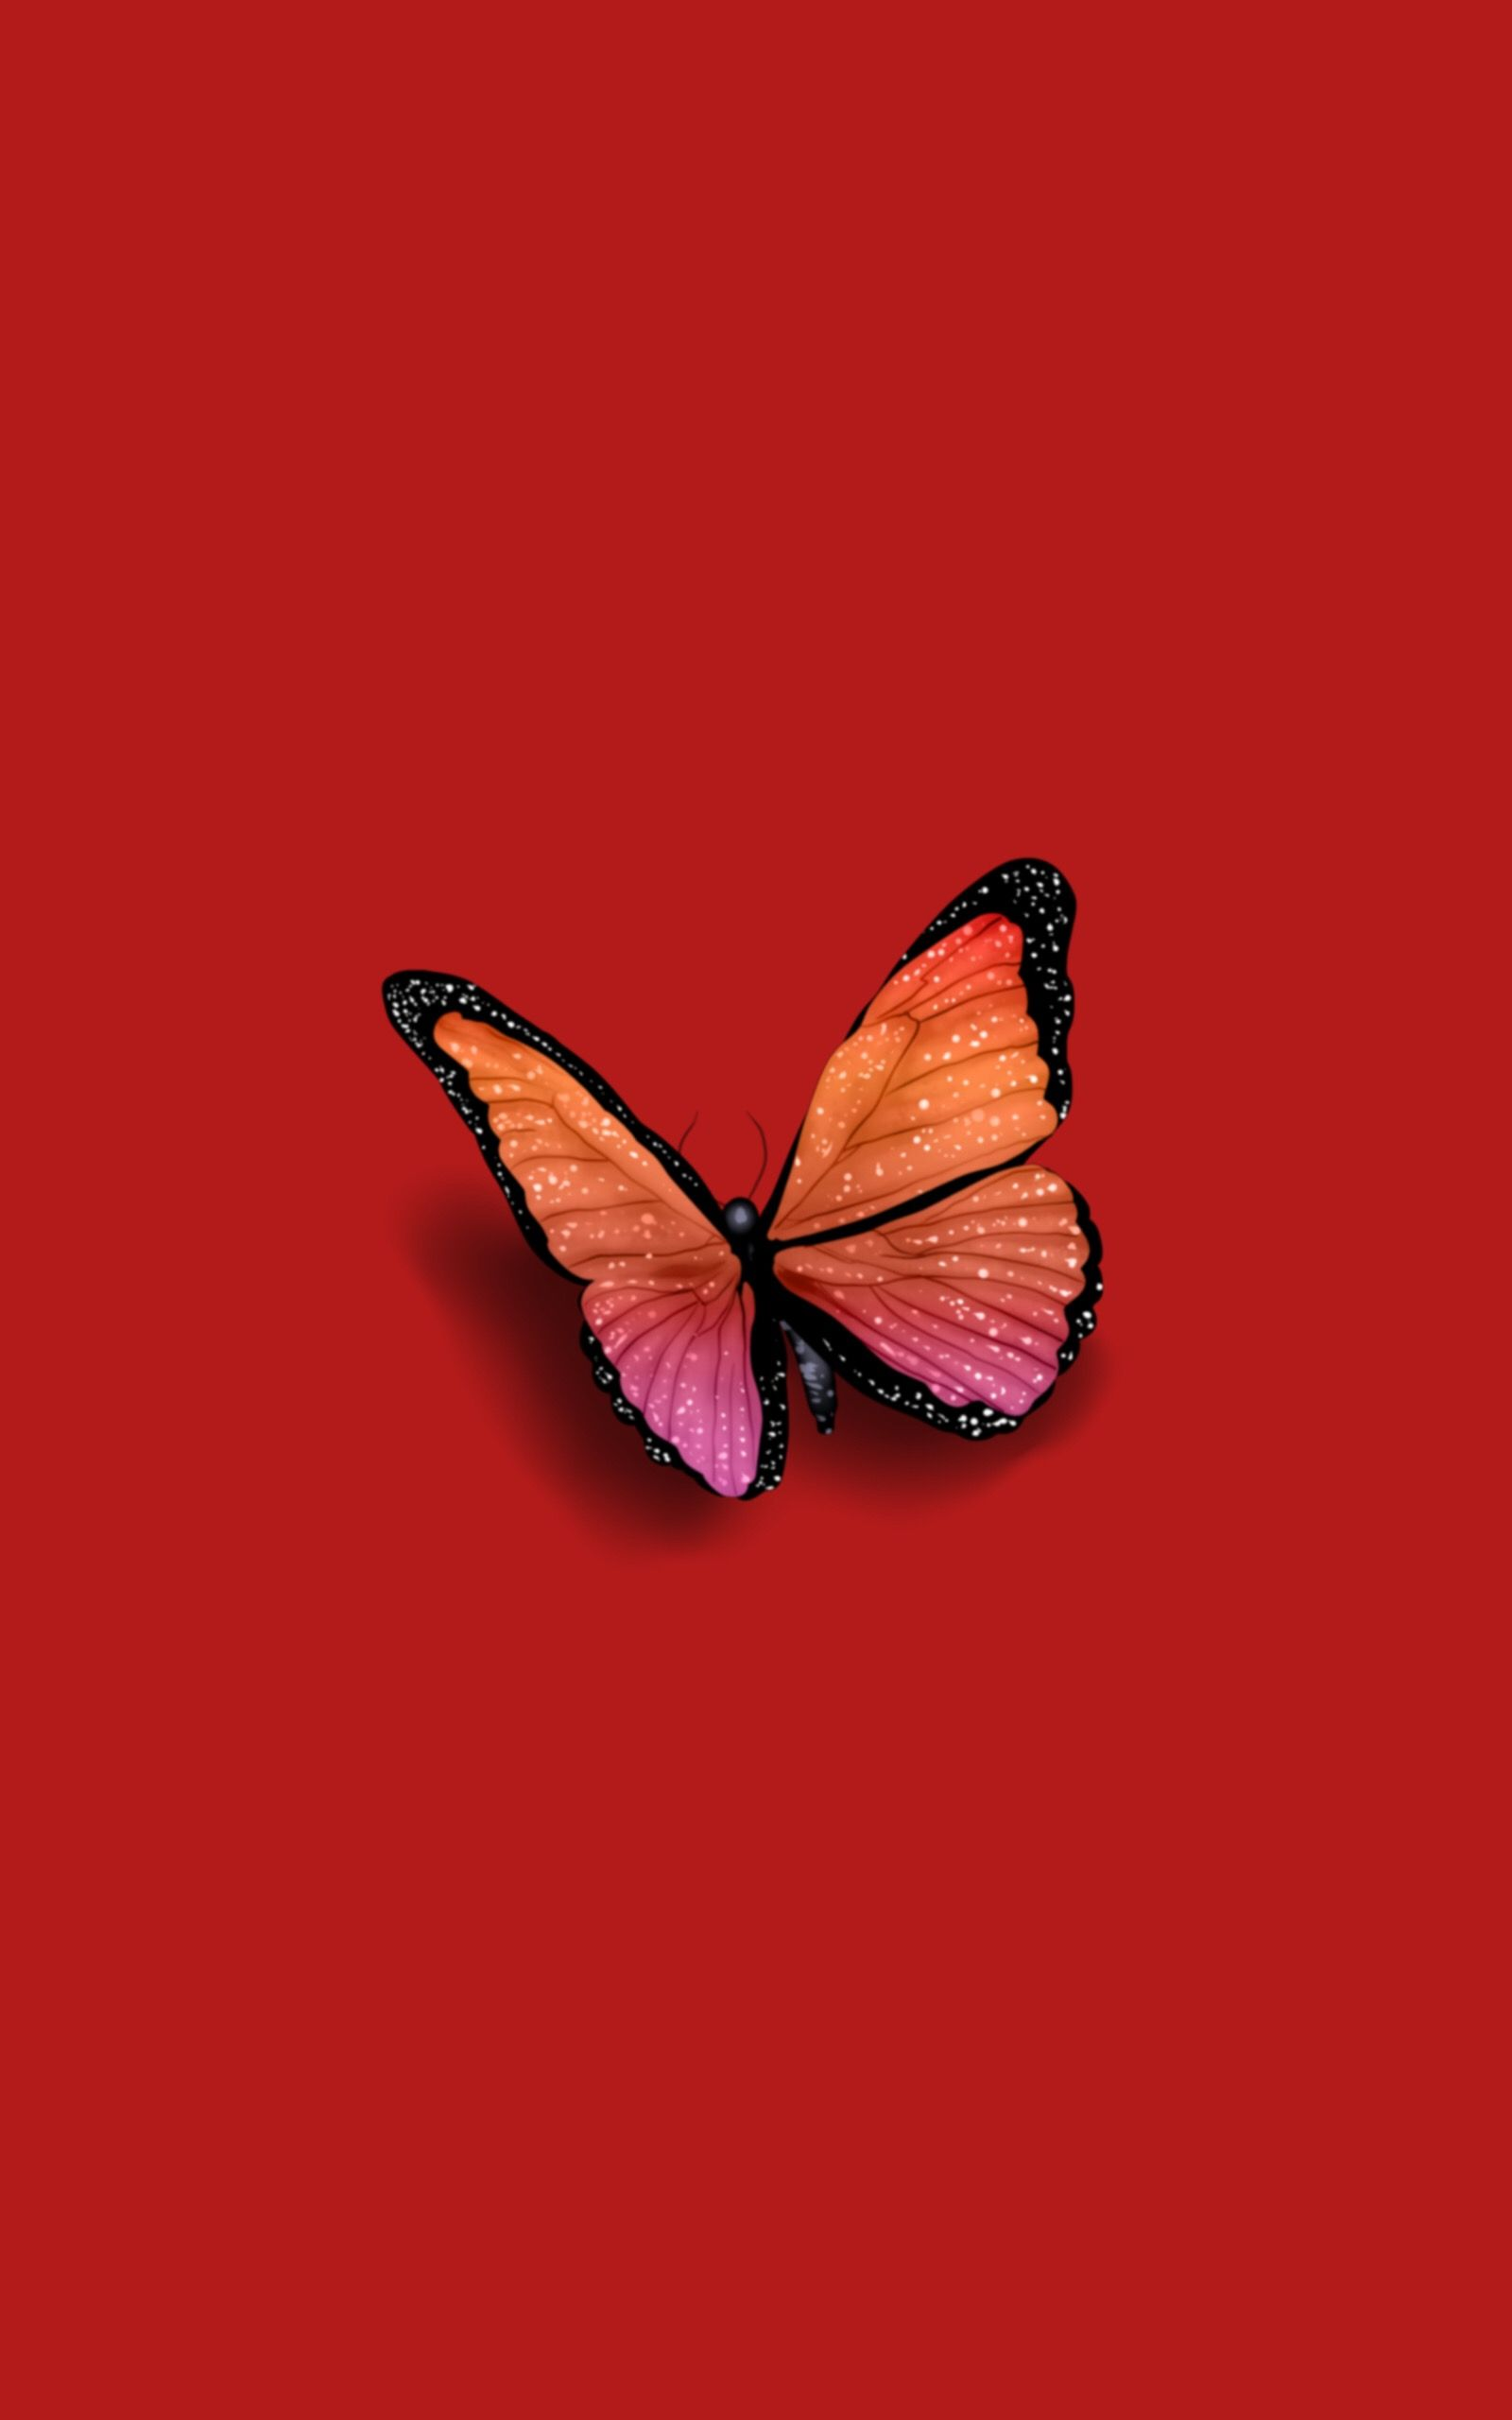 Red Butterfly Aesthetic Iphone Wallpaper Iphone Background